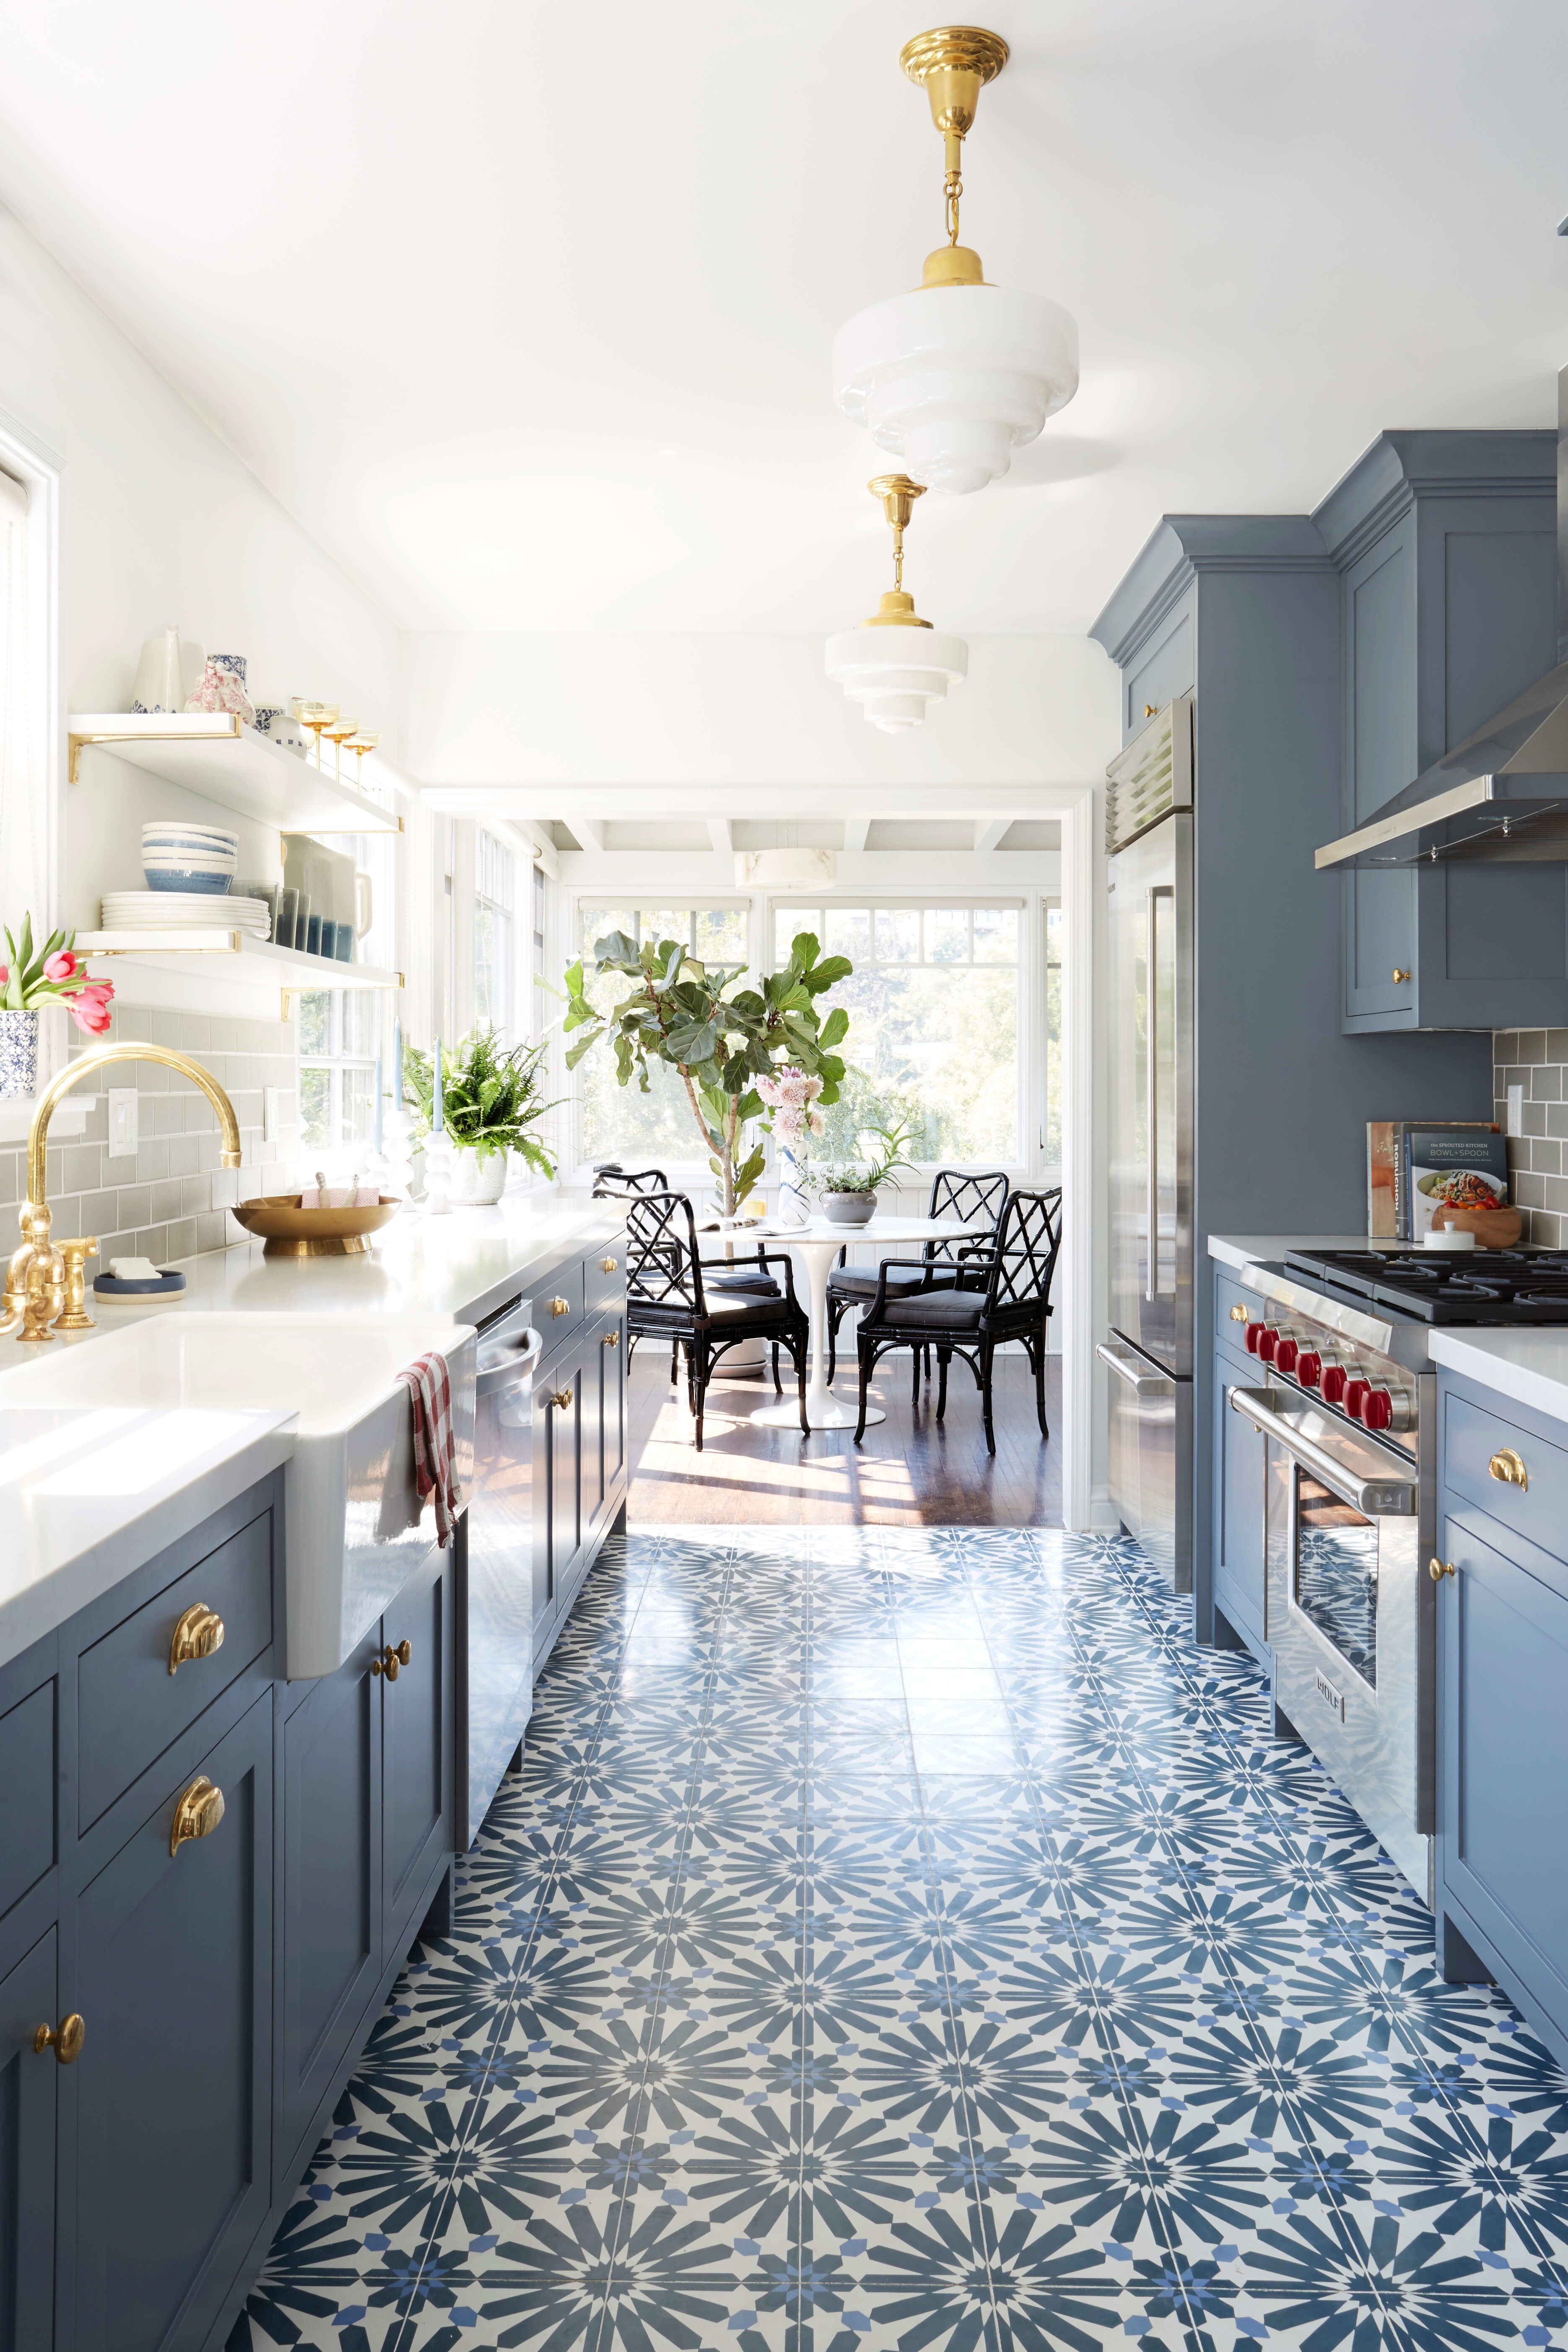 Emily Hendersonus Small Space Solutions for Your Kitchen